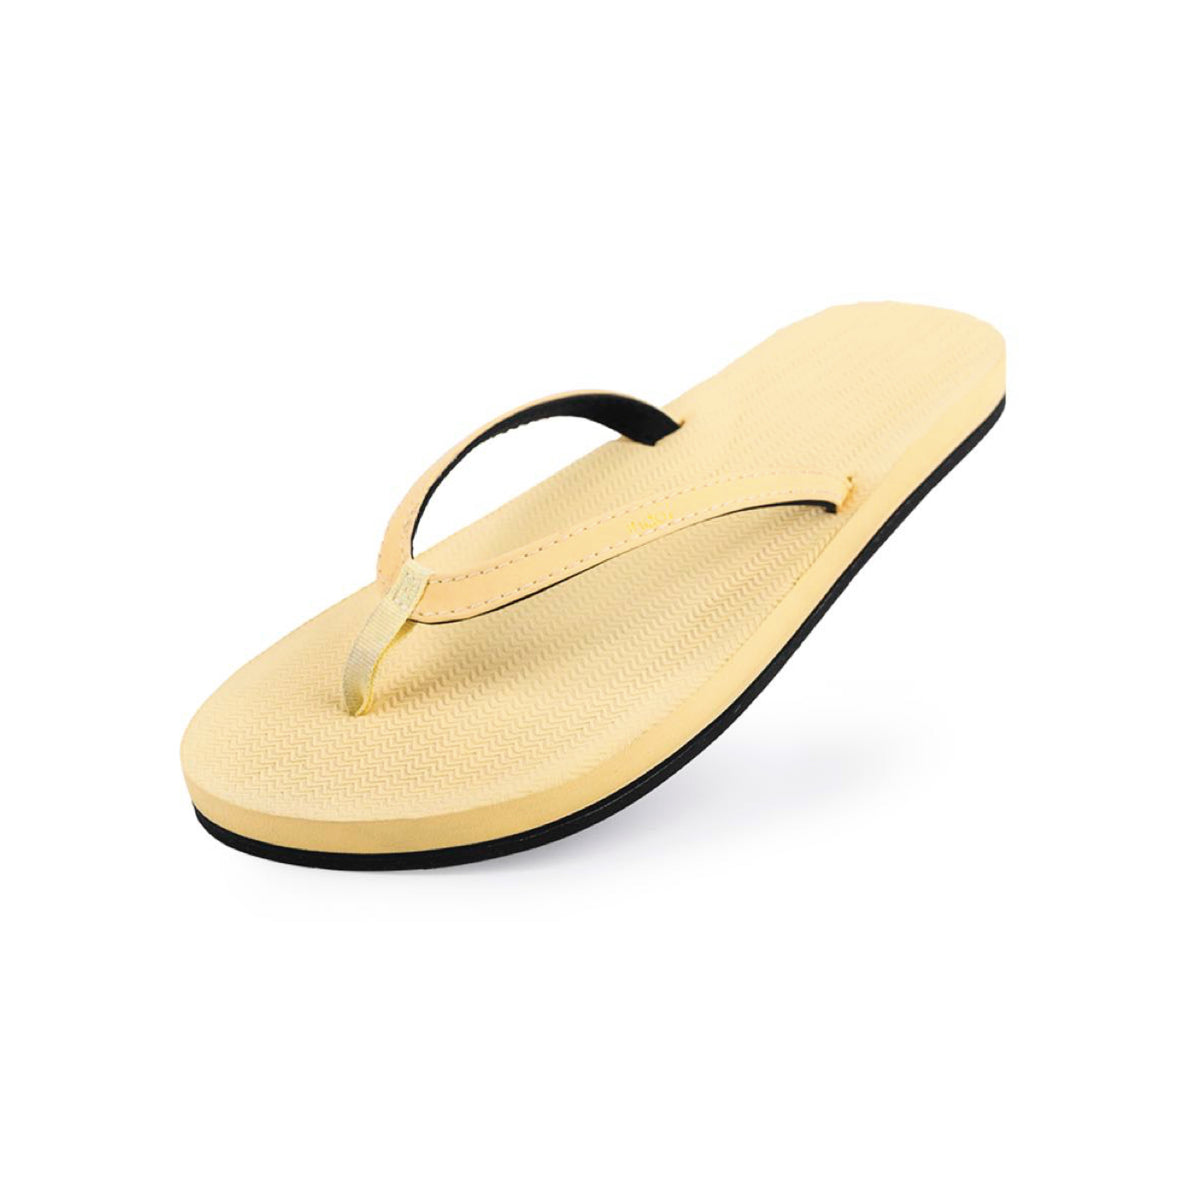 Women's Flip Flops Pollen - Lightweight, durable, waterproof, comfortable. Sustainably made vegan shoes using natural rubber and recycled tires